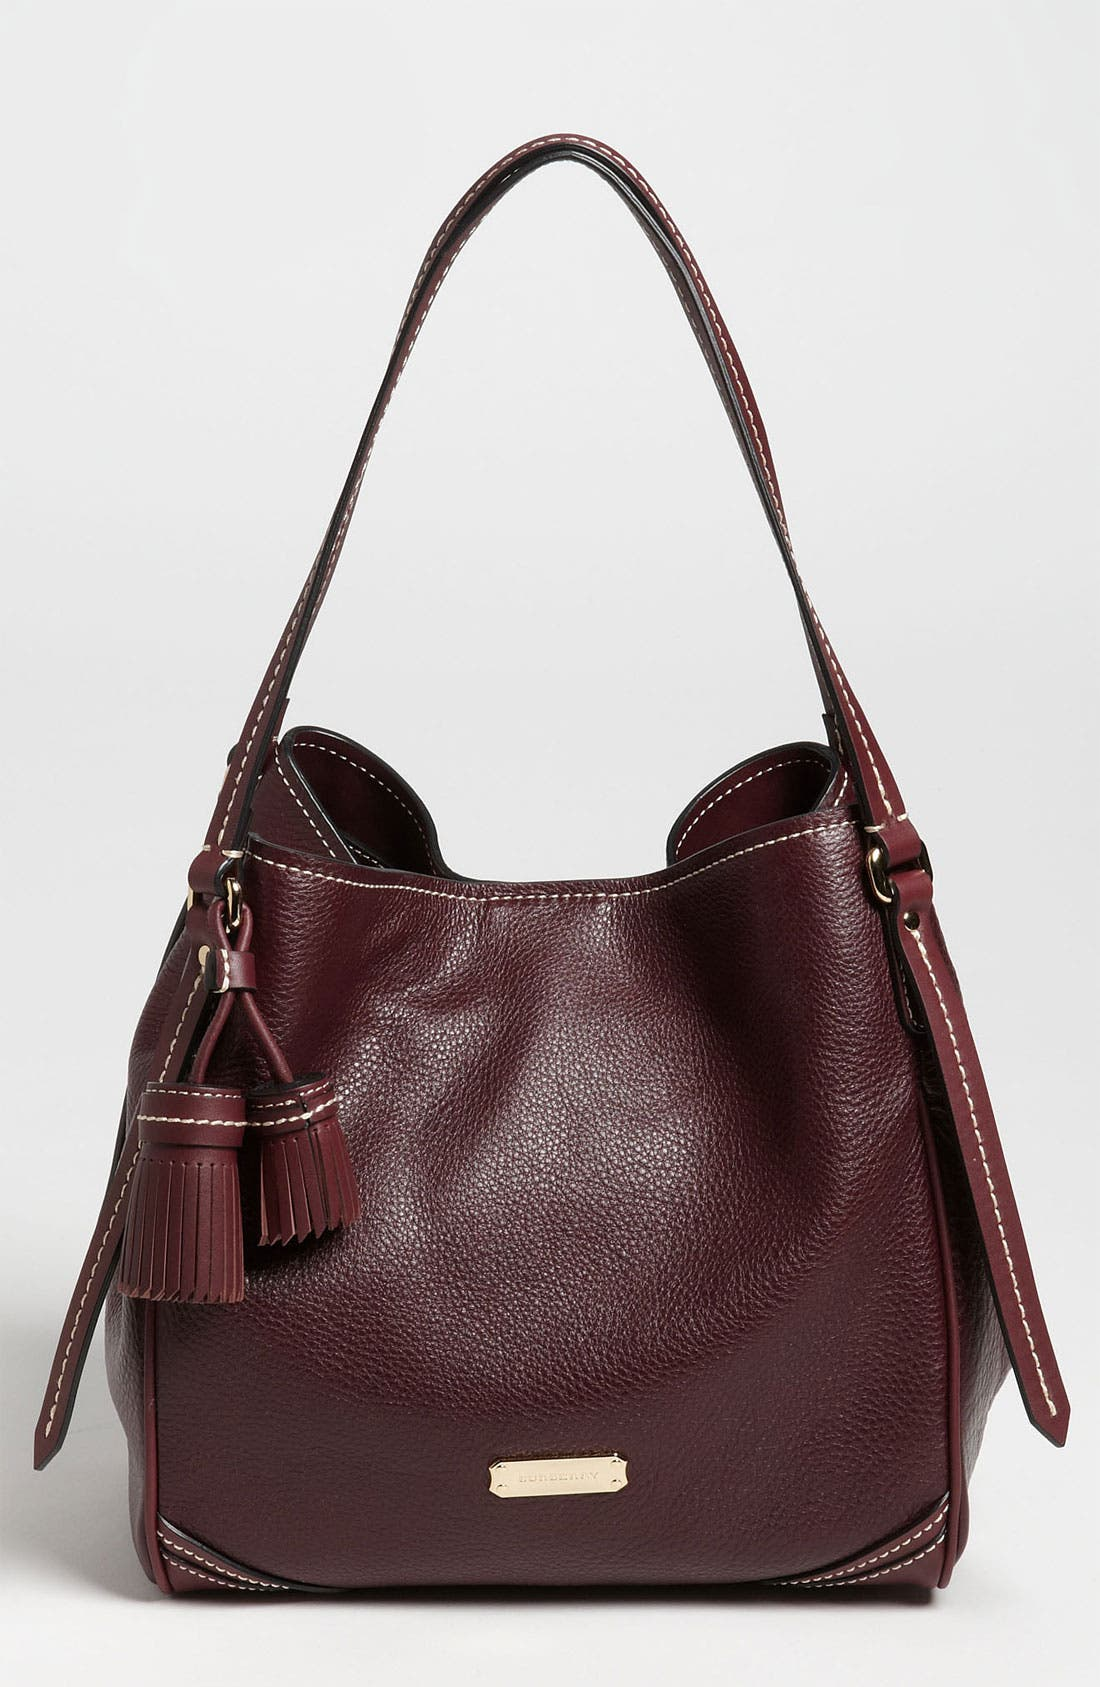 Alternate Image 1 Selected - Burberry 'Saddle Stitch' Leather Tote